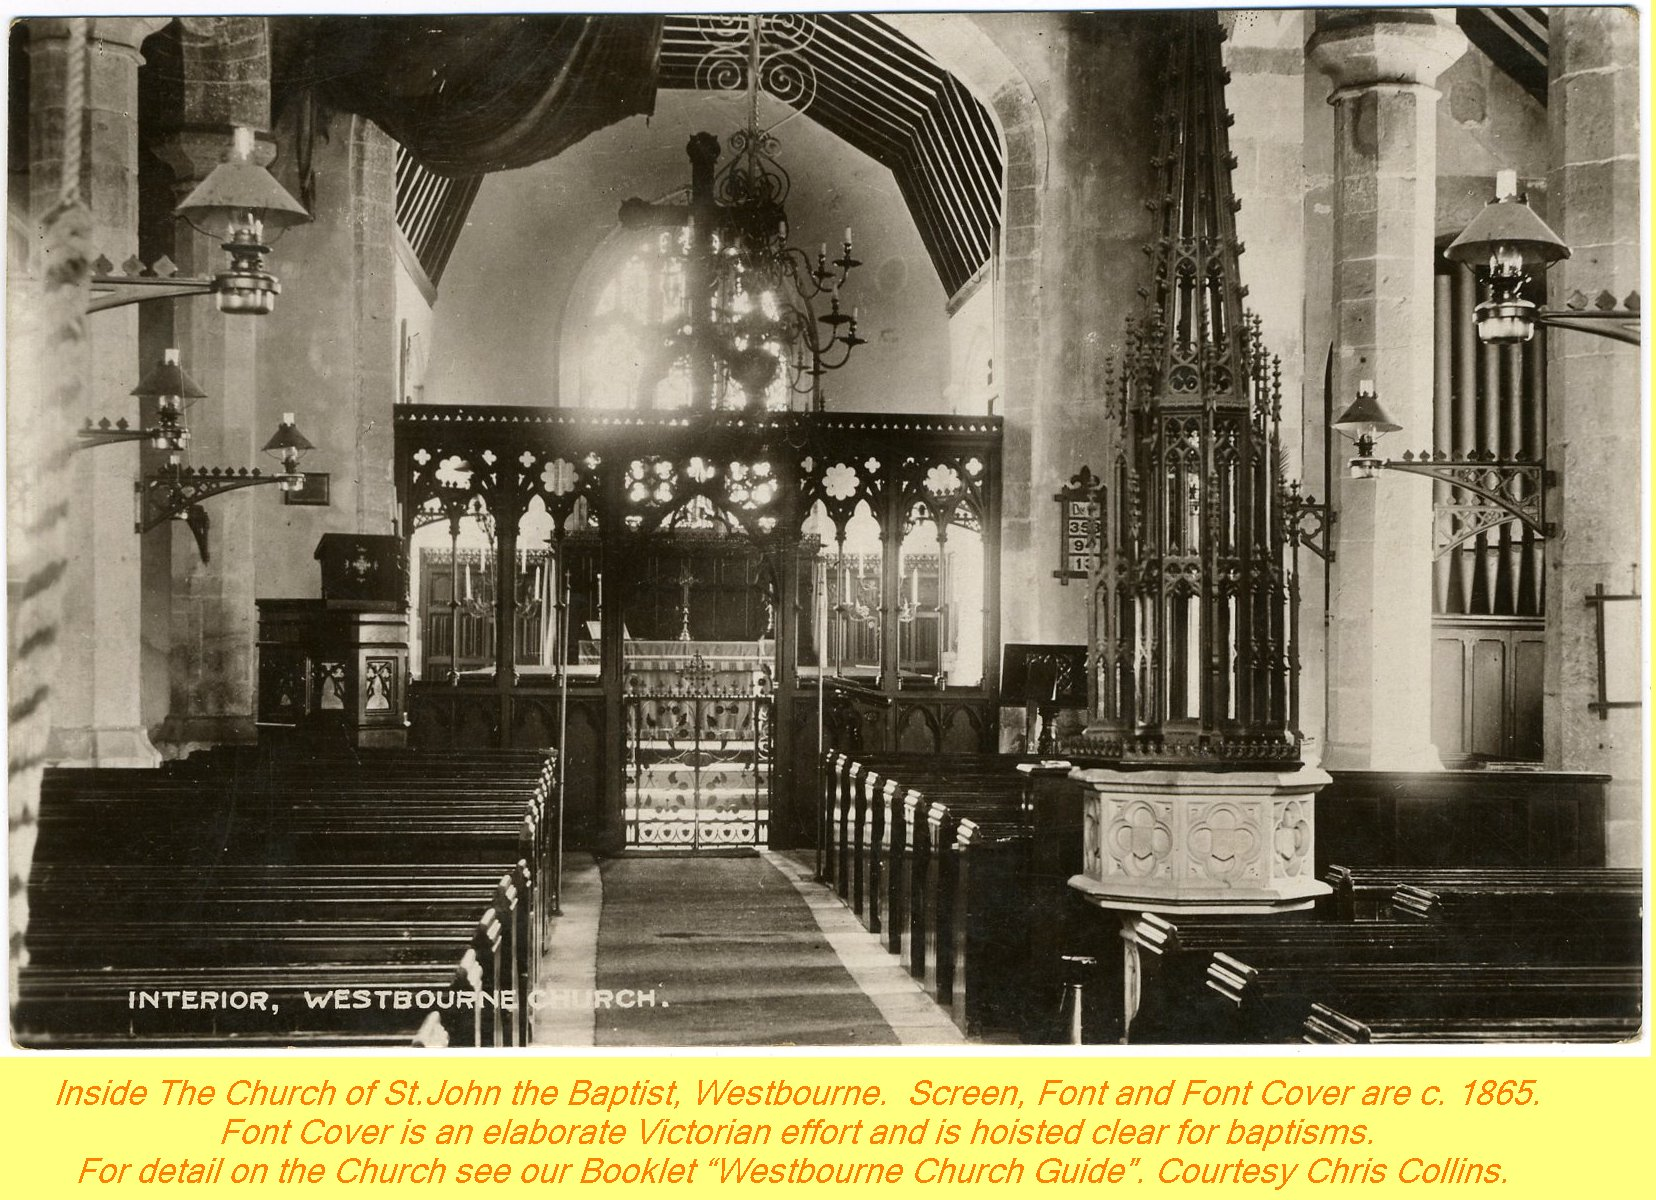 WESTBOURNE HISTORY PHOTO, CHURCH, St. JOHN, YEW, INTERIOR, SCREEN, FONT, SPERLING